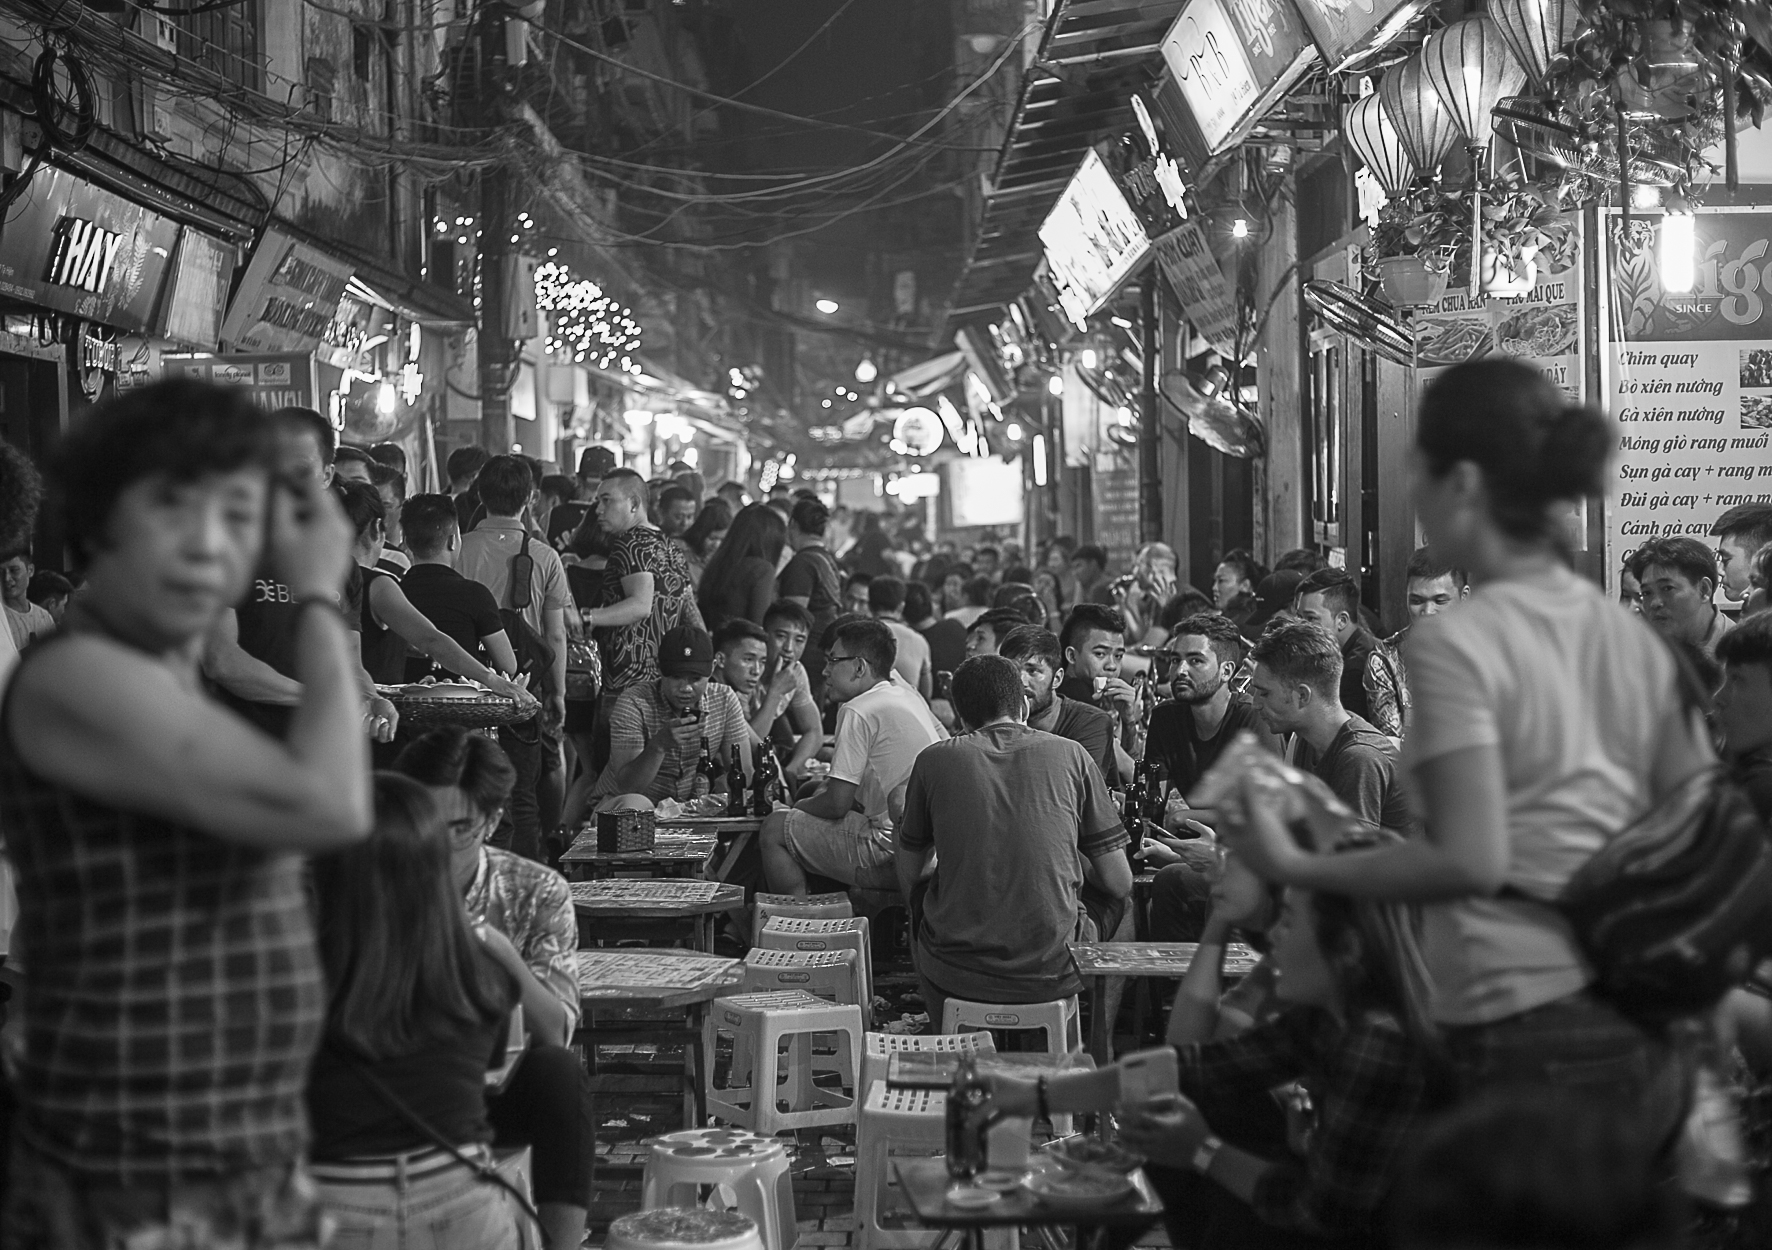 Night Street Market